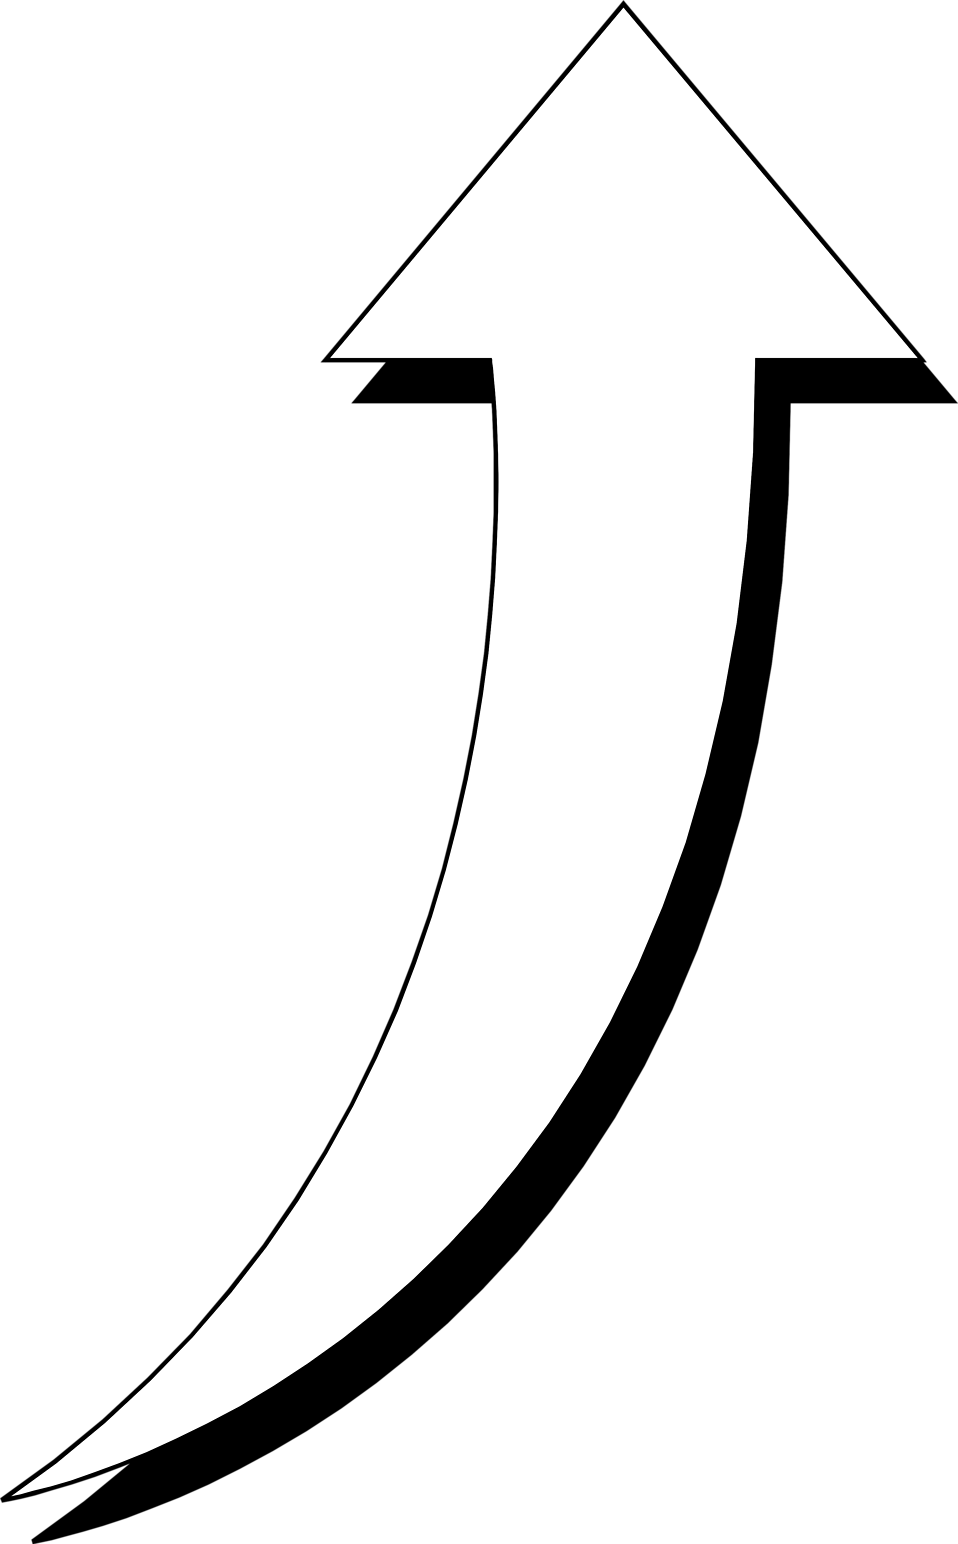 Arrow White | Free Stock Photo | Illustration of a curved ...